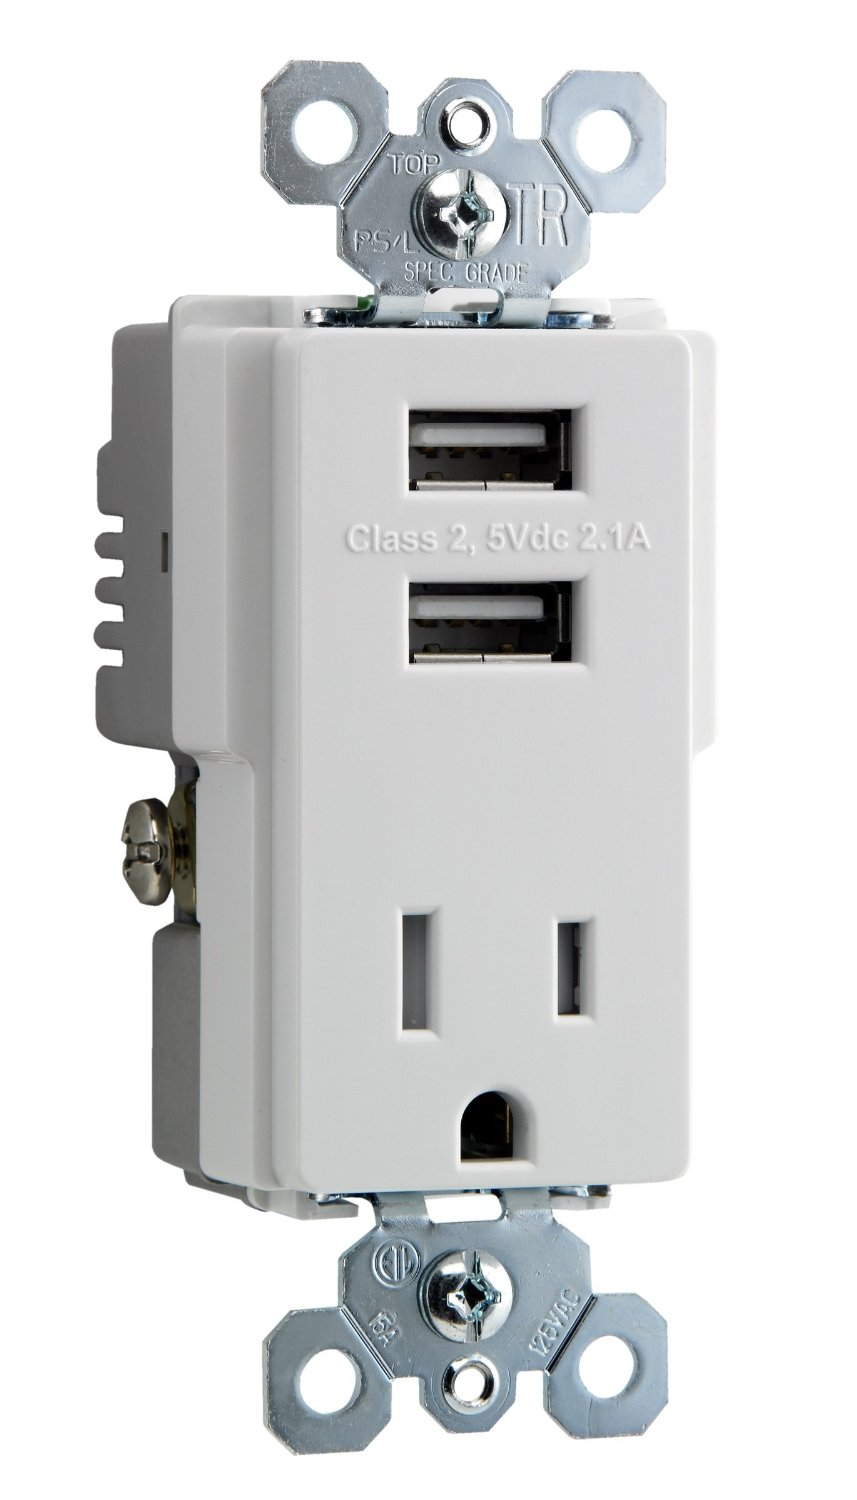 Cheap Outlet Usb Combo, find Outlet Usb Combo deals on line at ...